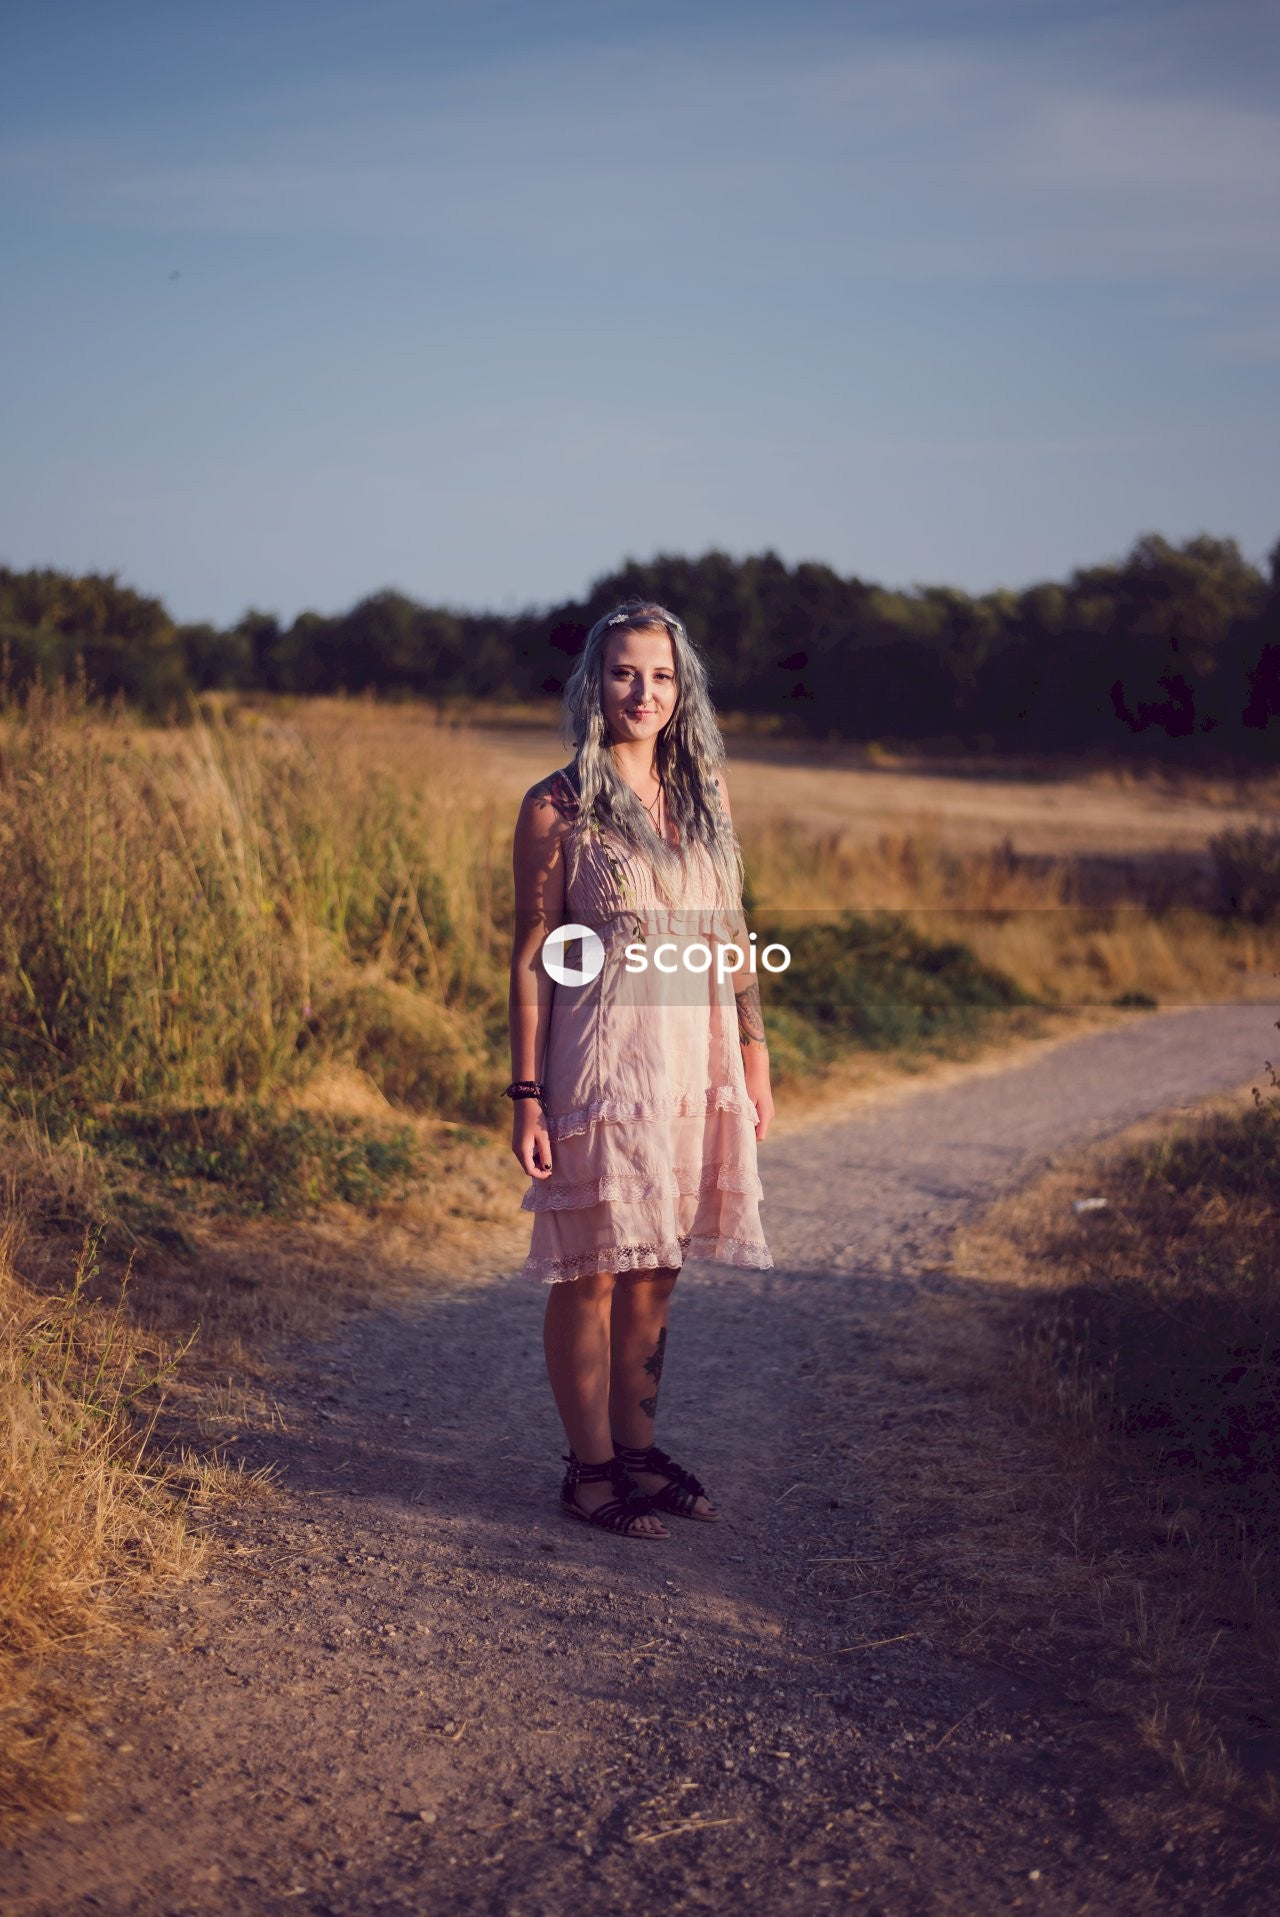 Woman in brown dress standing on dirt road